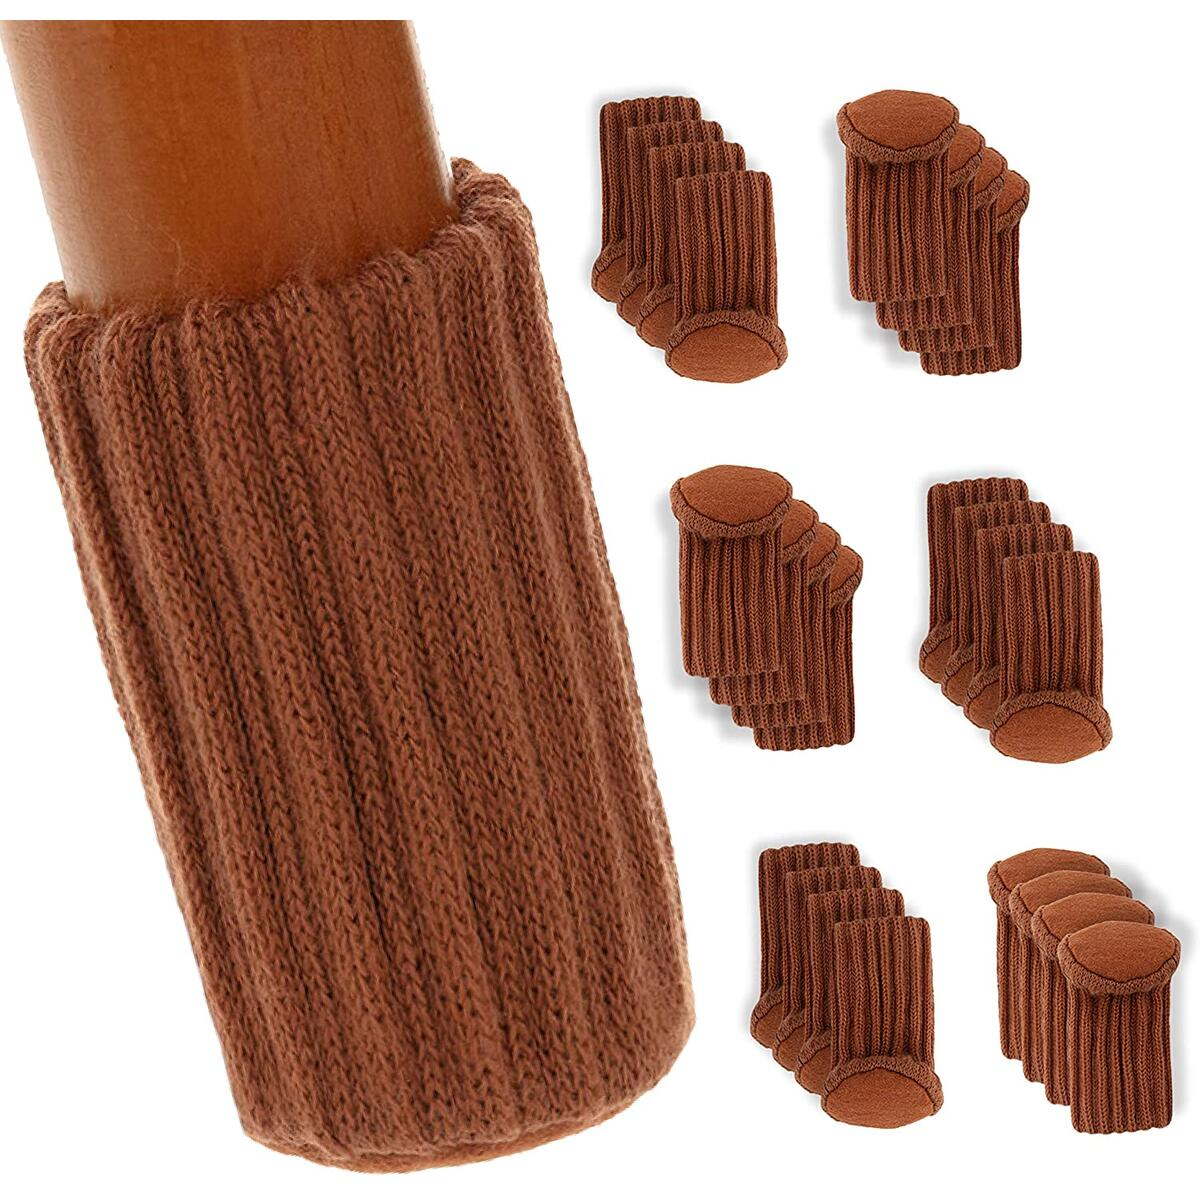 FLOOR DEFENDERS Chair Socks, 24 Pack – The Un-Holey, Firm-Grippy, Near-Silent Felt Padded Floor Protector Socks – Robust High-Density Fiber – Furniture Pads, Brown – Legs & Chairs